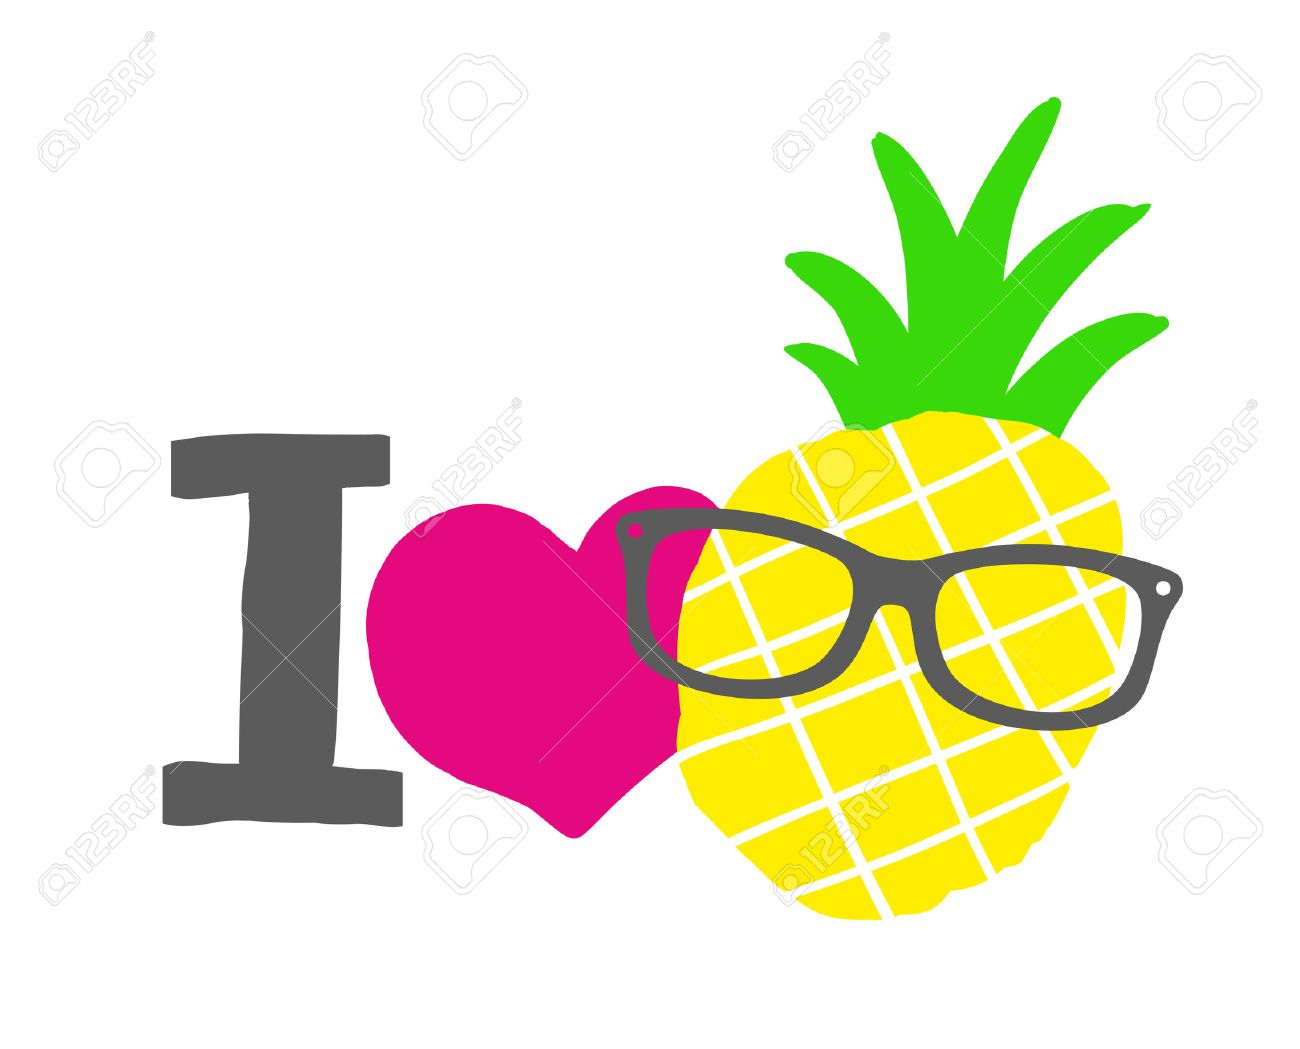 pineapple with sunglasses clipart. i love pineapple print. isolated vector illustration. stock - 45688091 with sunglasses clipart s